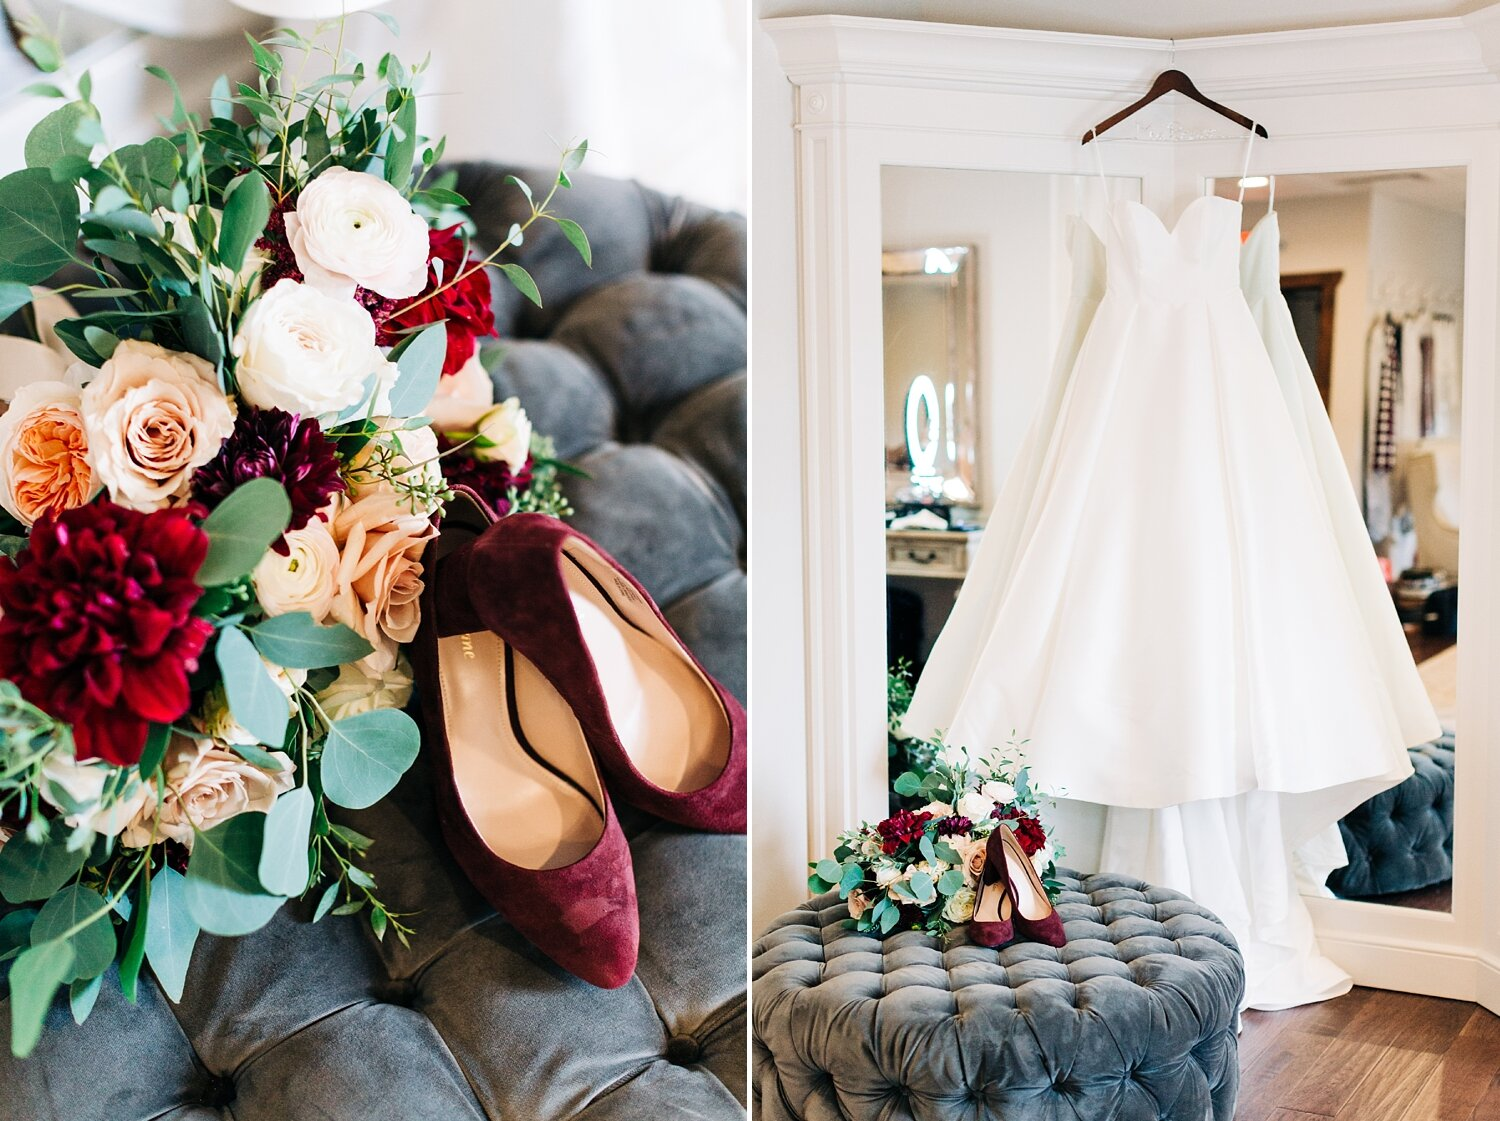 wedding dress hangs from the mirror in the bridal suite